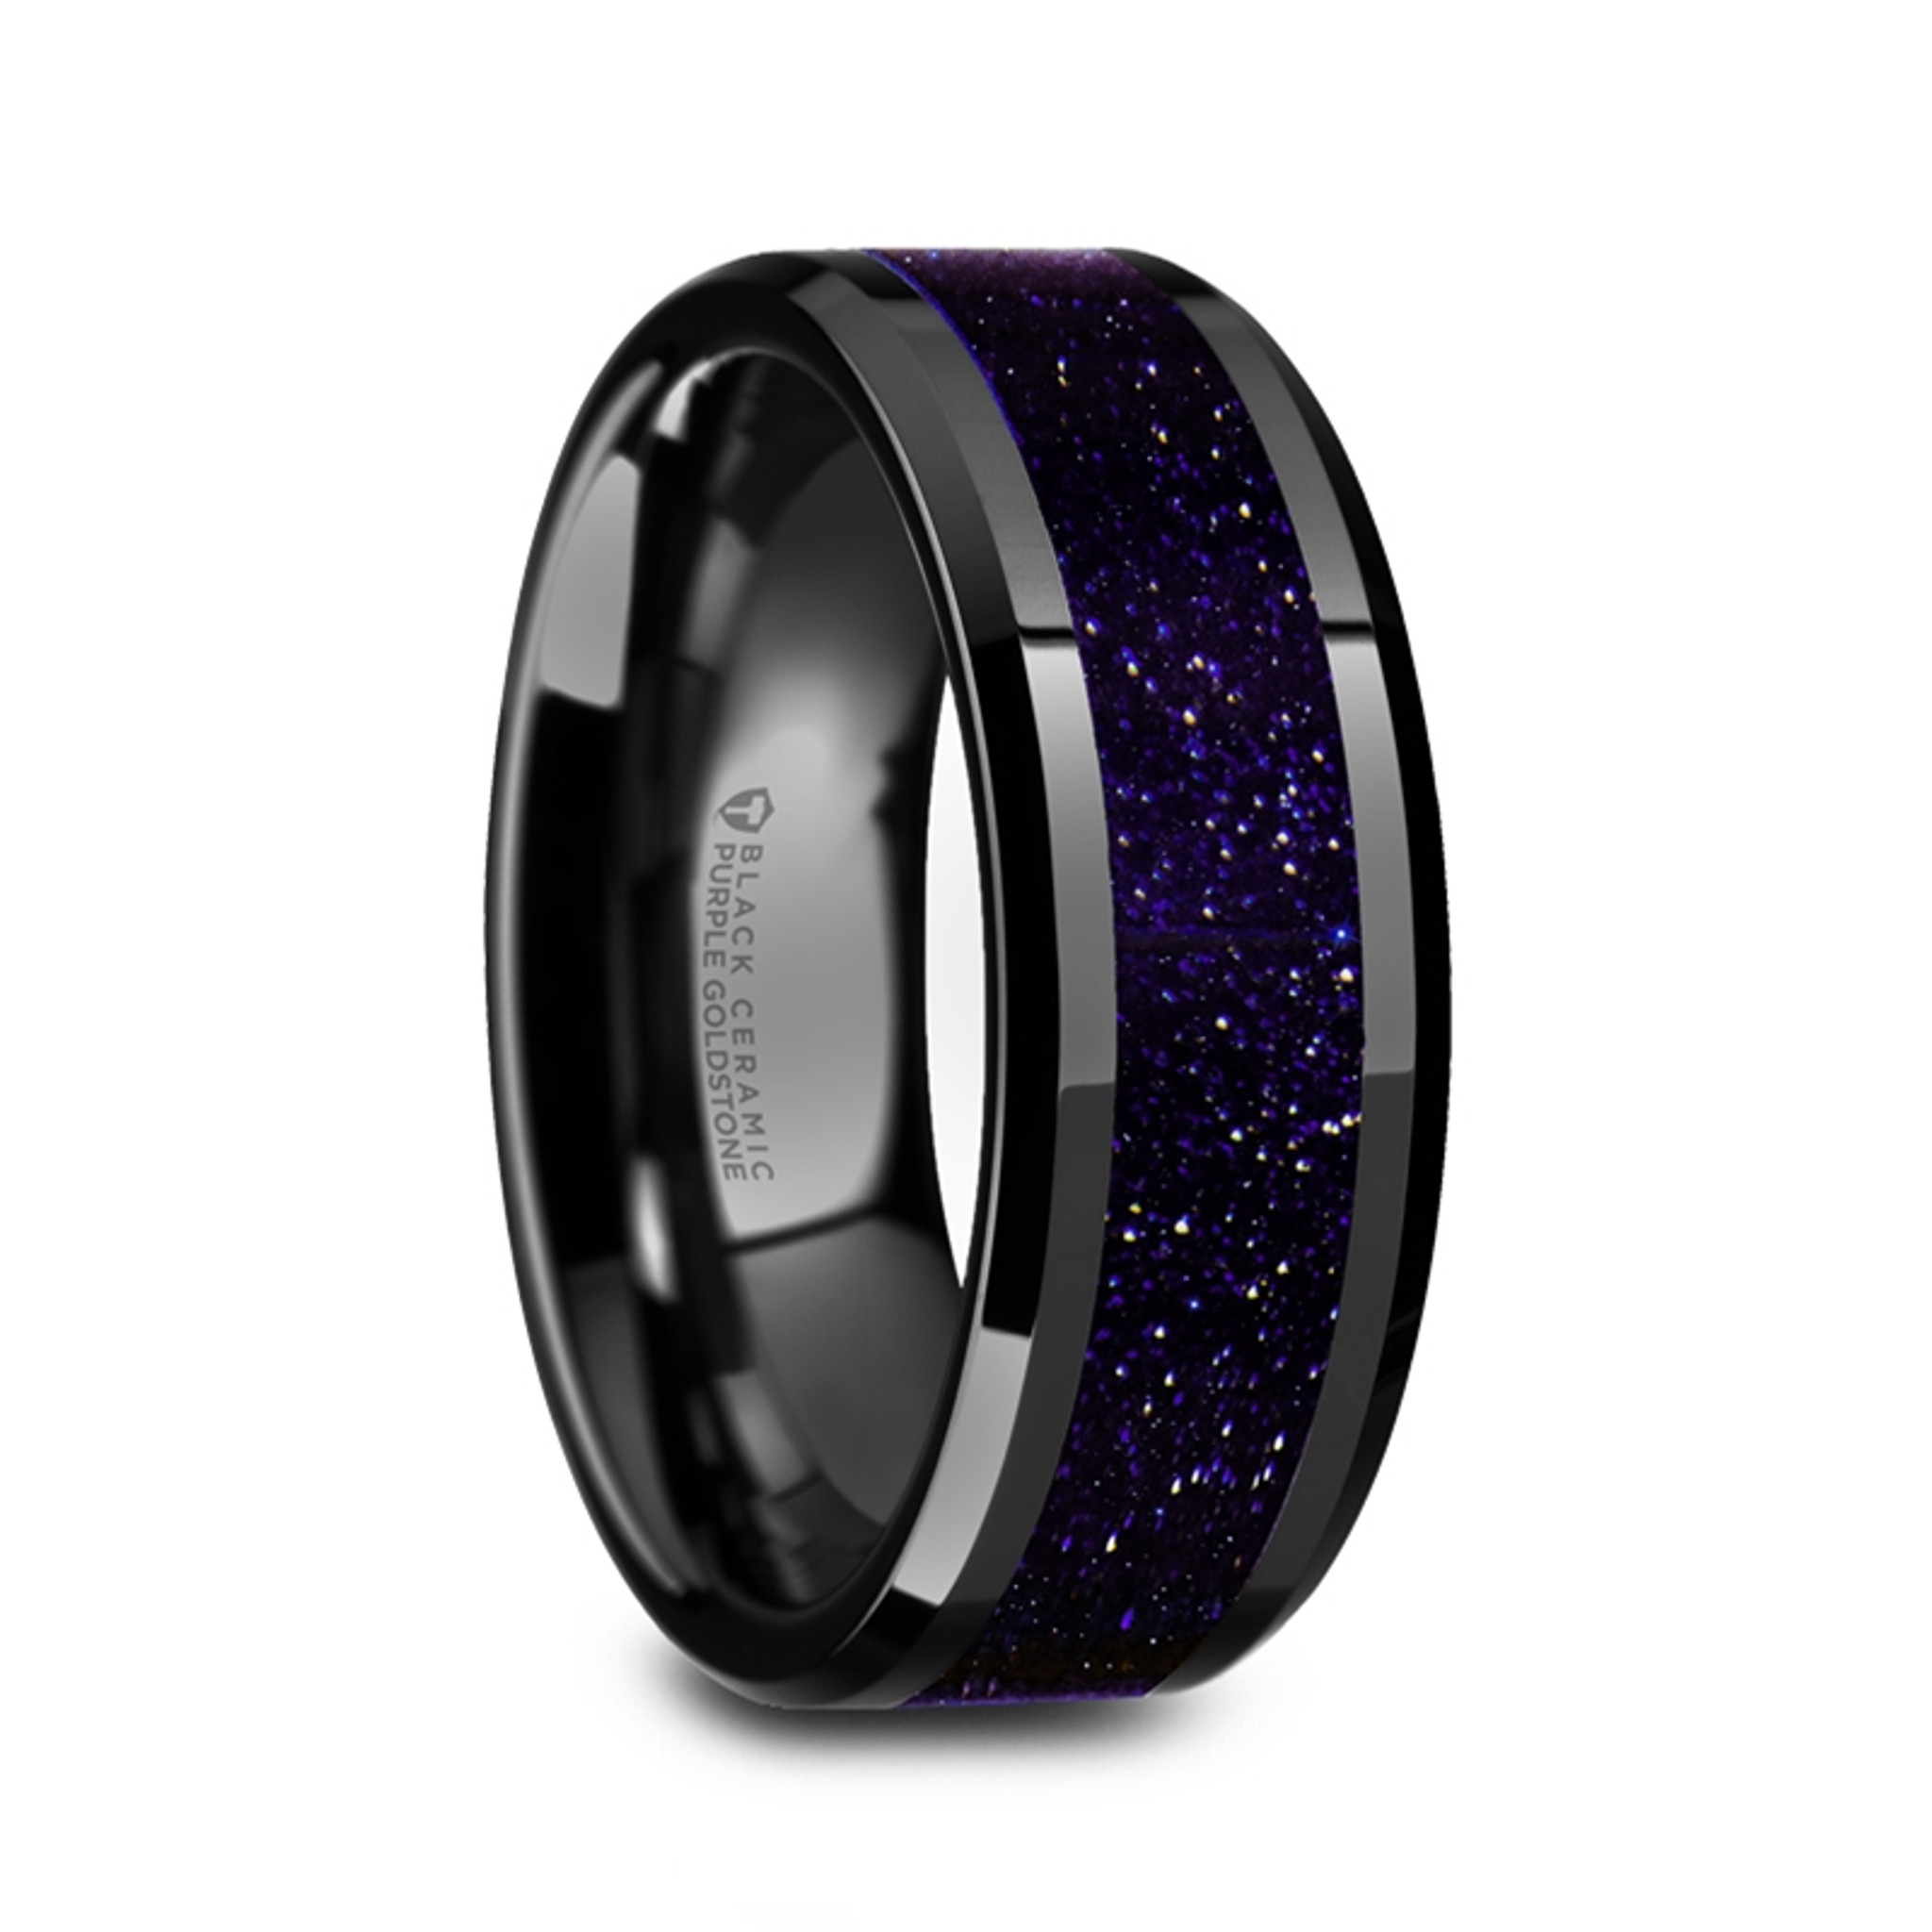 Aergia Black Ceramic Polished Men's Wedding Band with Purple Goldstone Inlay from Vansweden Jewelers